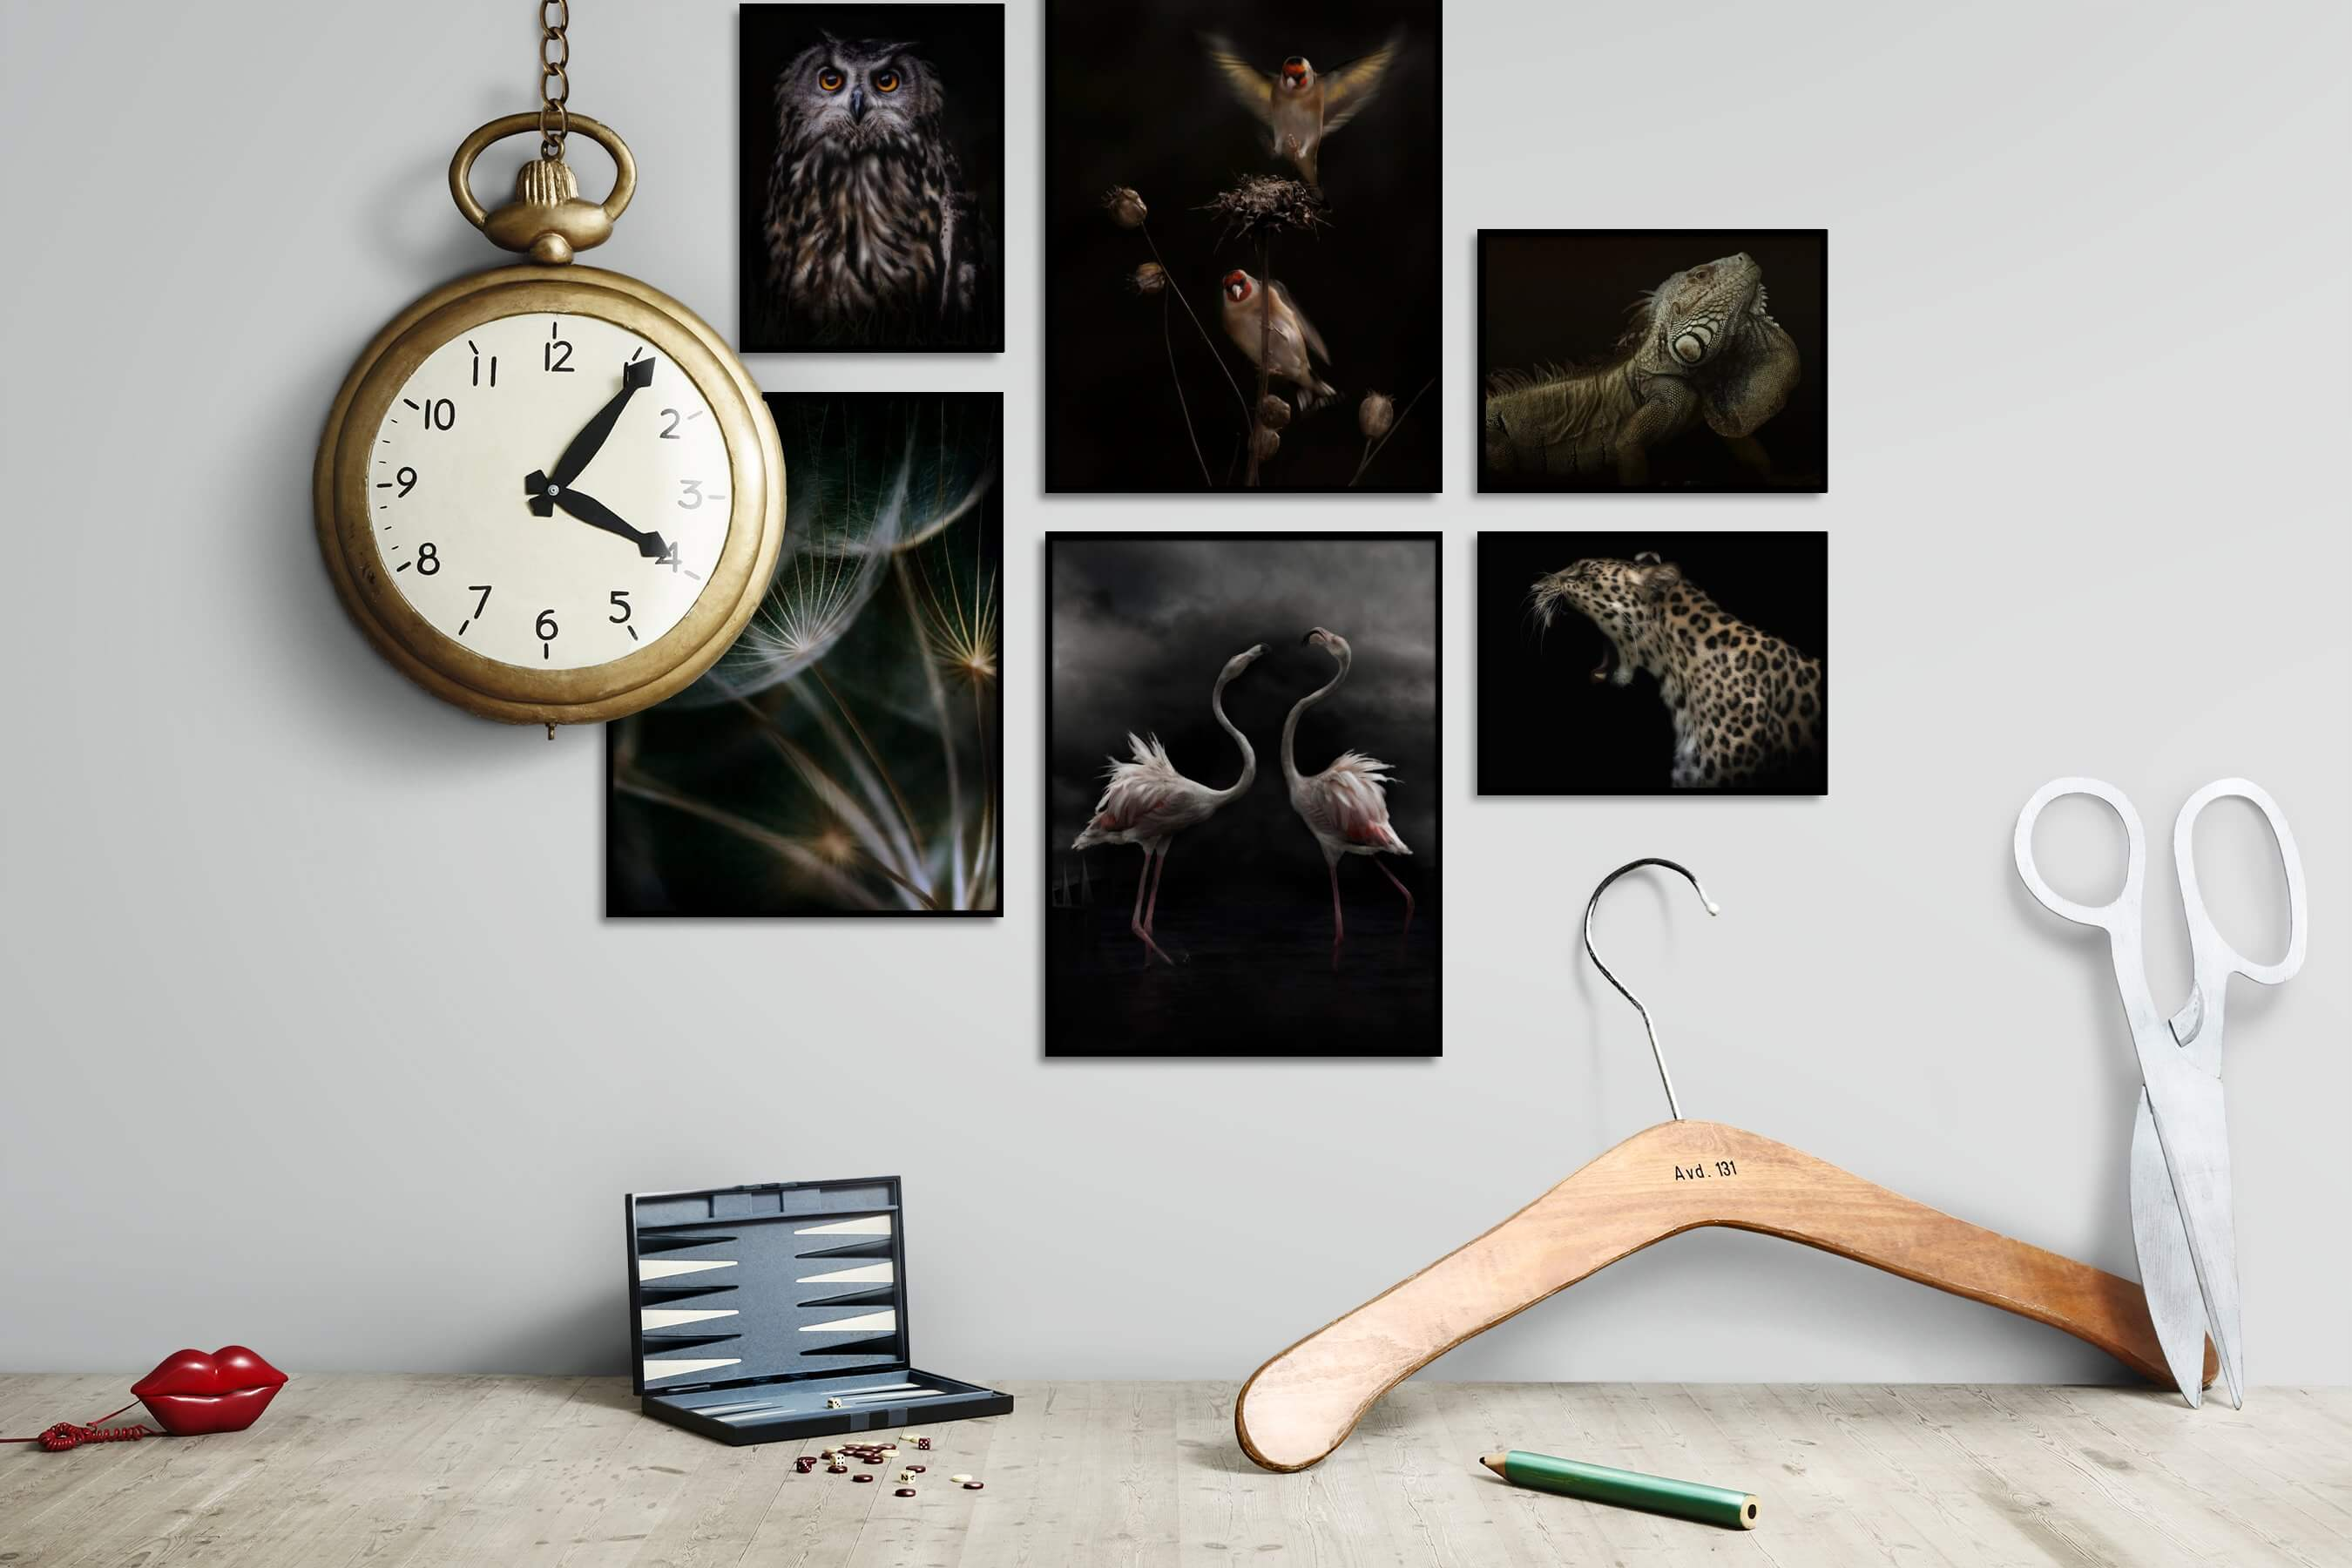 Gallery wall idea with six framed pictures arranged on a wall depicting Dark Tones, Animals, For the Moderate, Flowers & Plants, and For the Minimalist